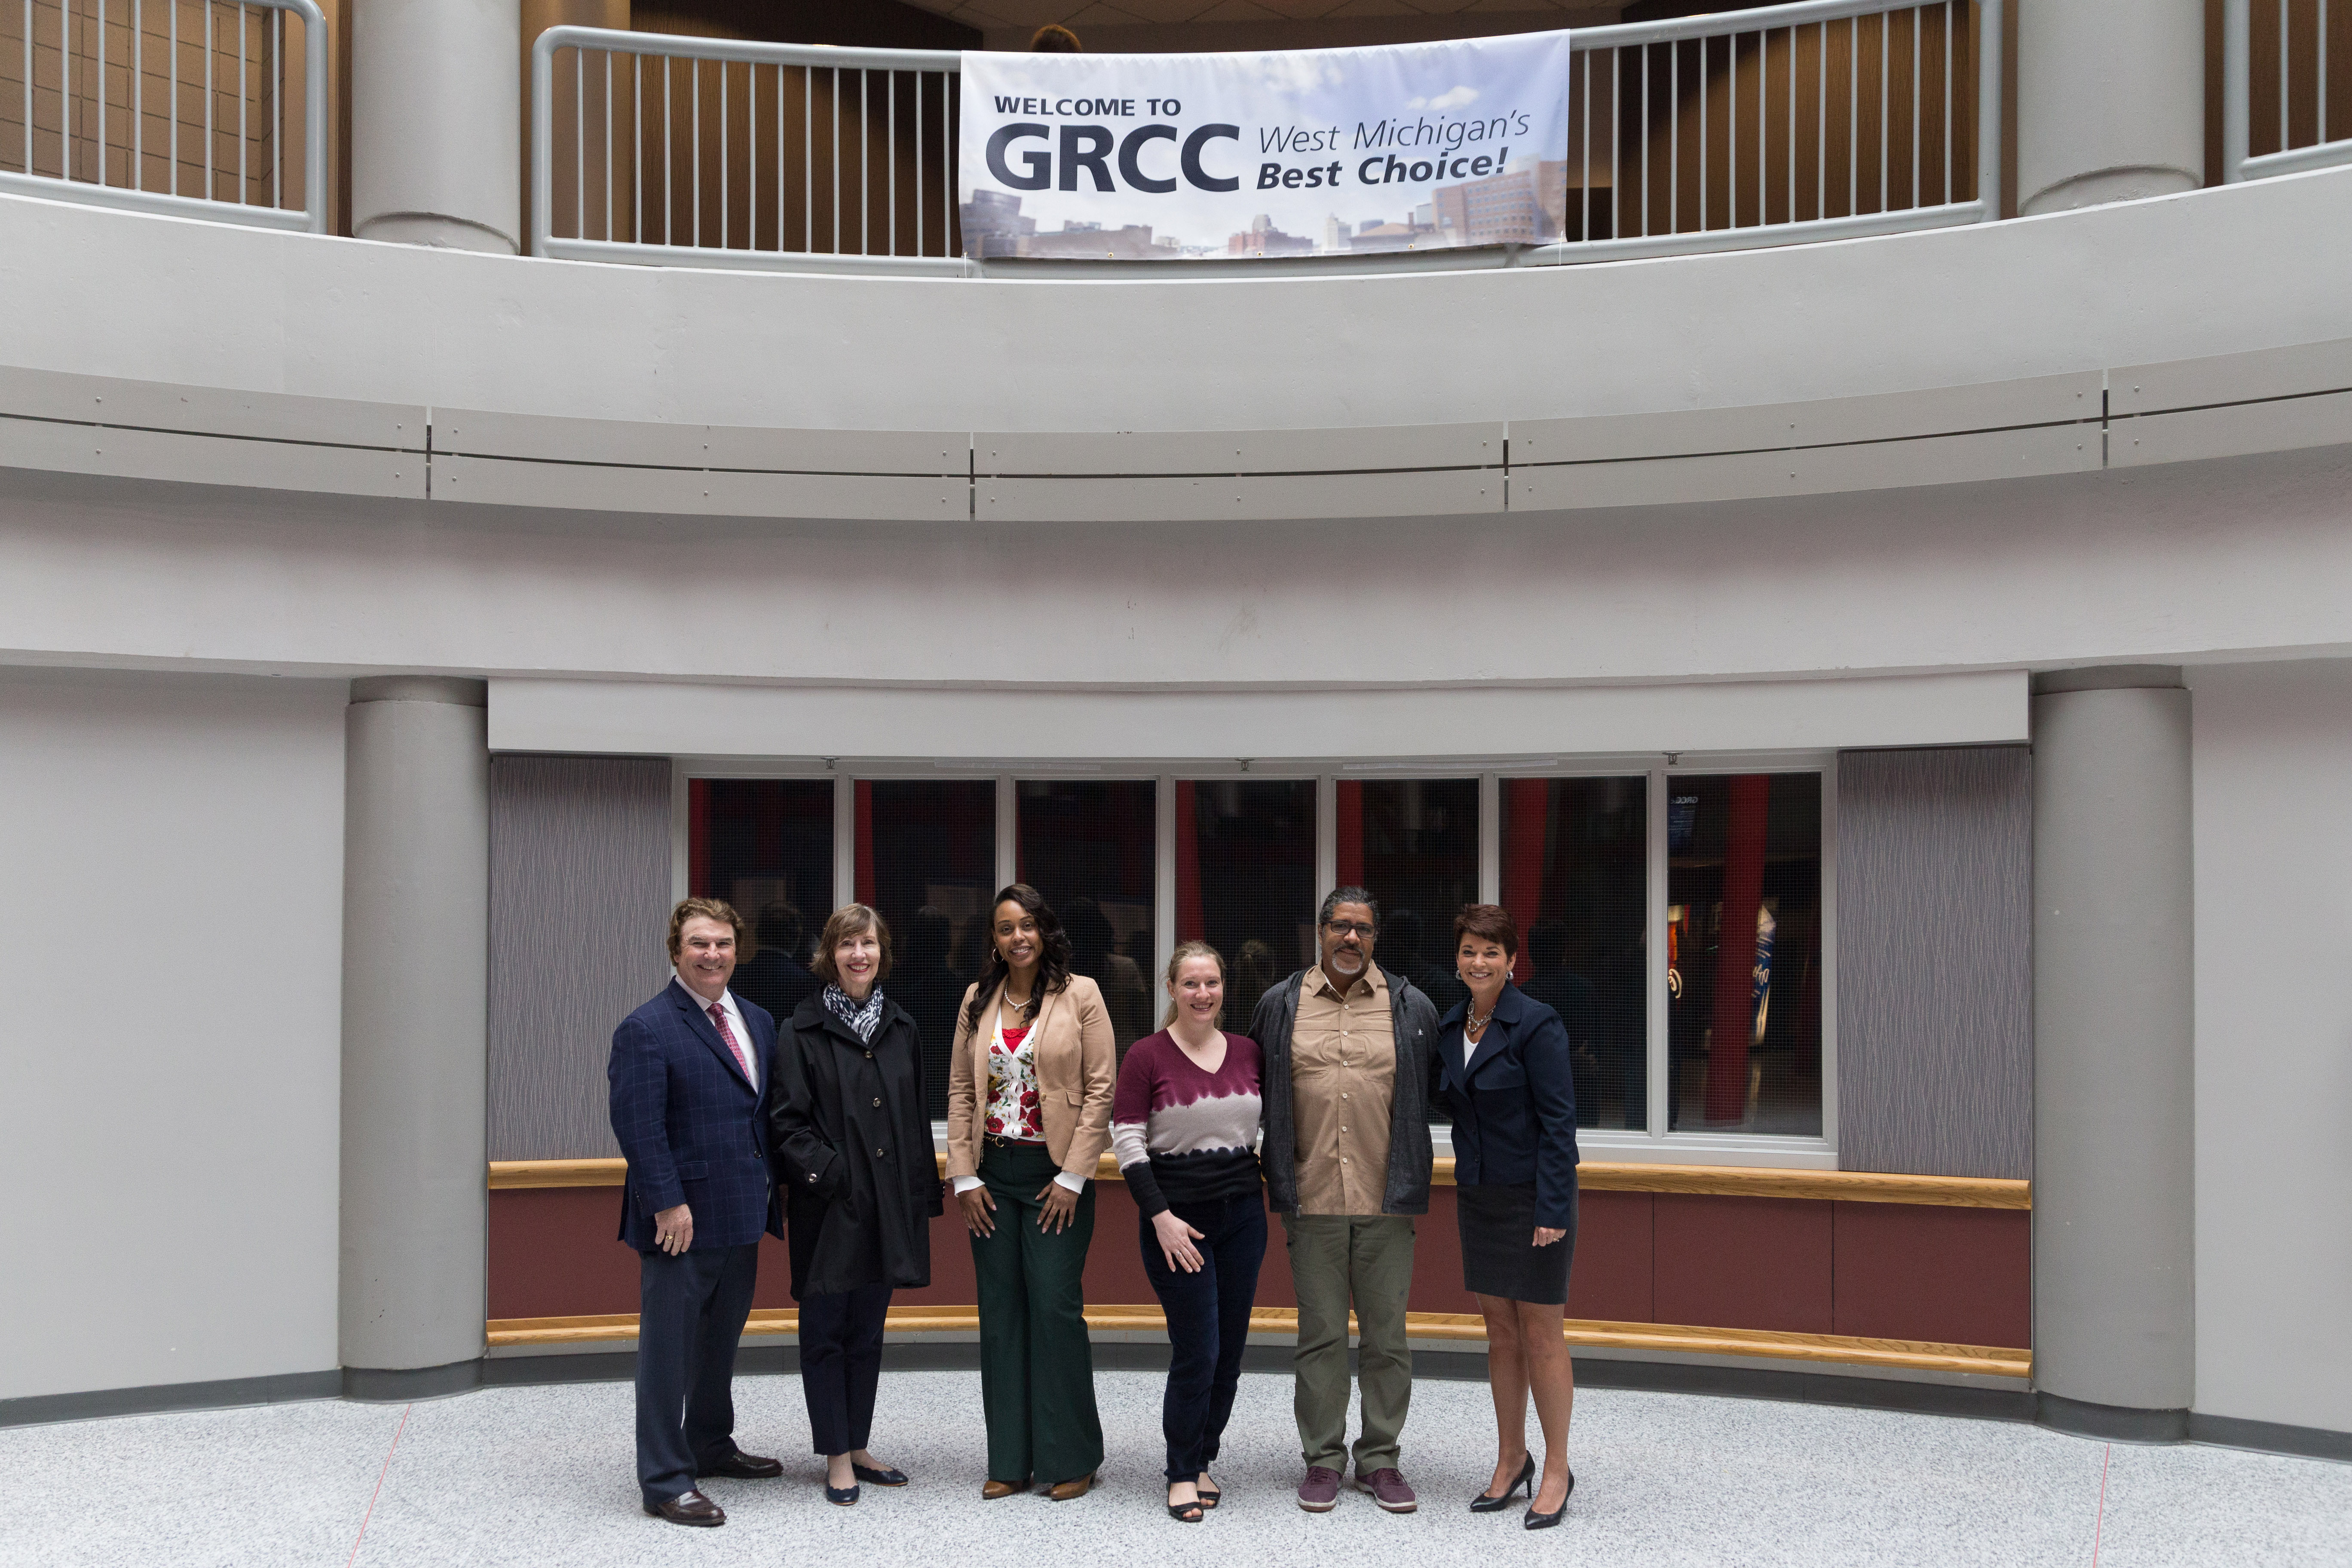 GRCC Steps In To Right an Academic Unfairness